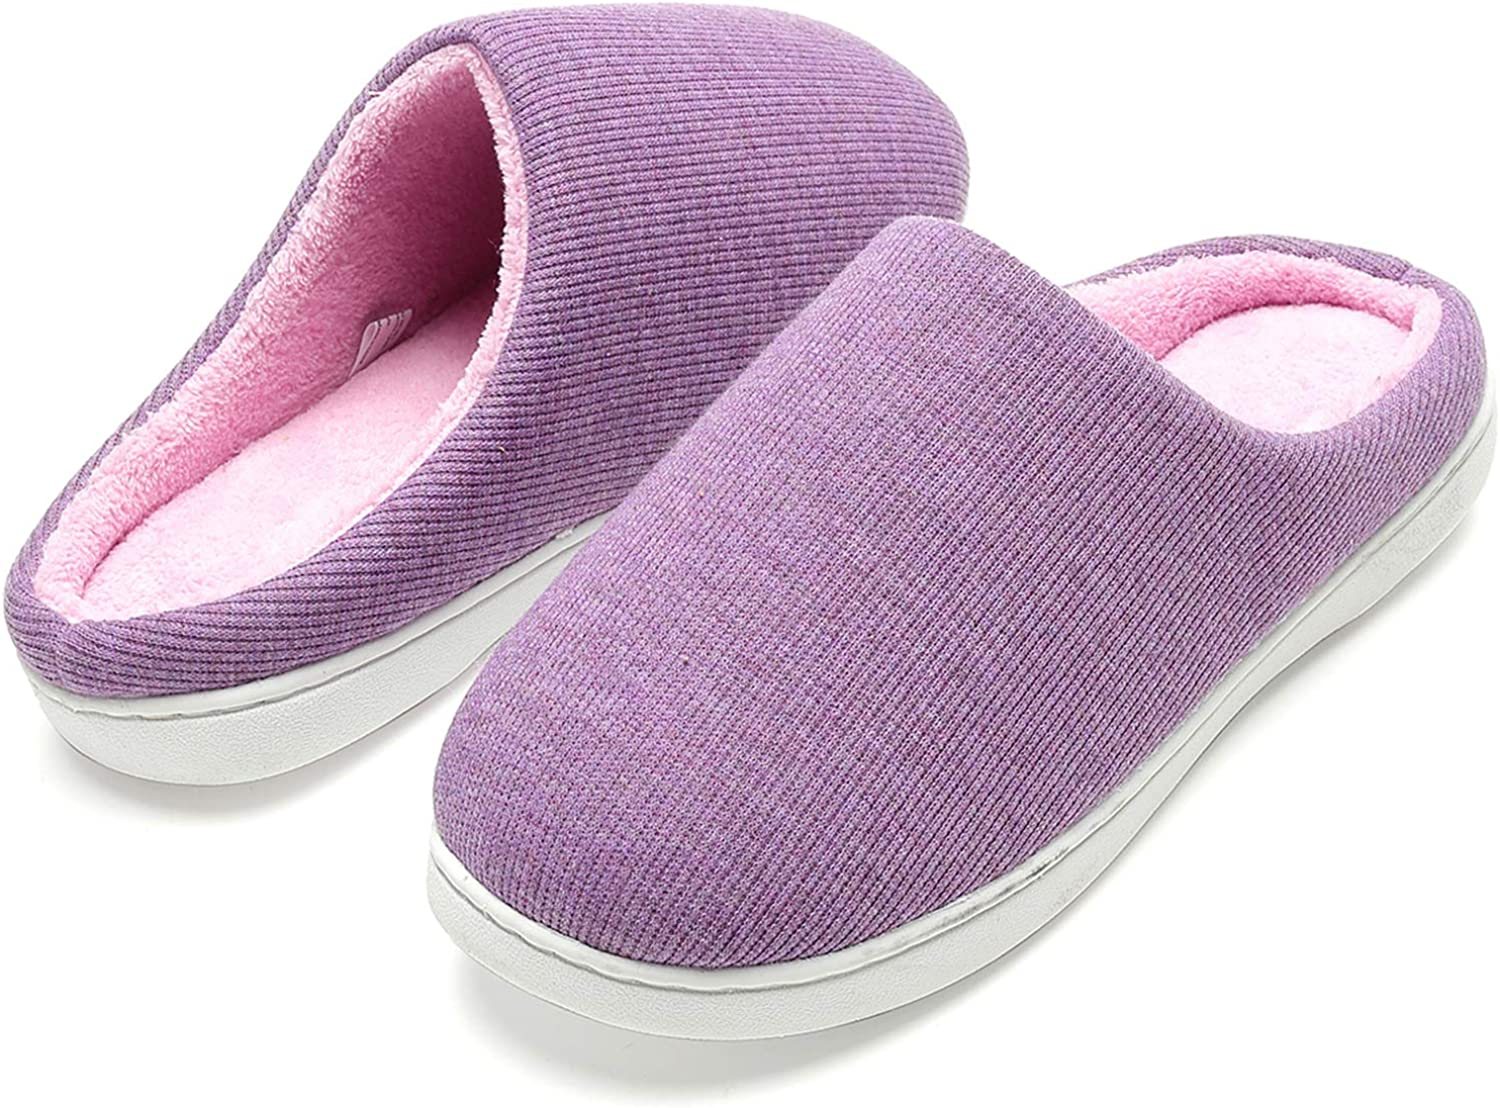 Slippers for Women, Memory Foam Two-Tone Non-Slip Fuzzy House Slippers Cozy Slip On Bedroom House Shoes for Indoor Outdoor